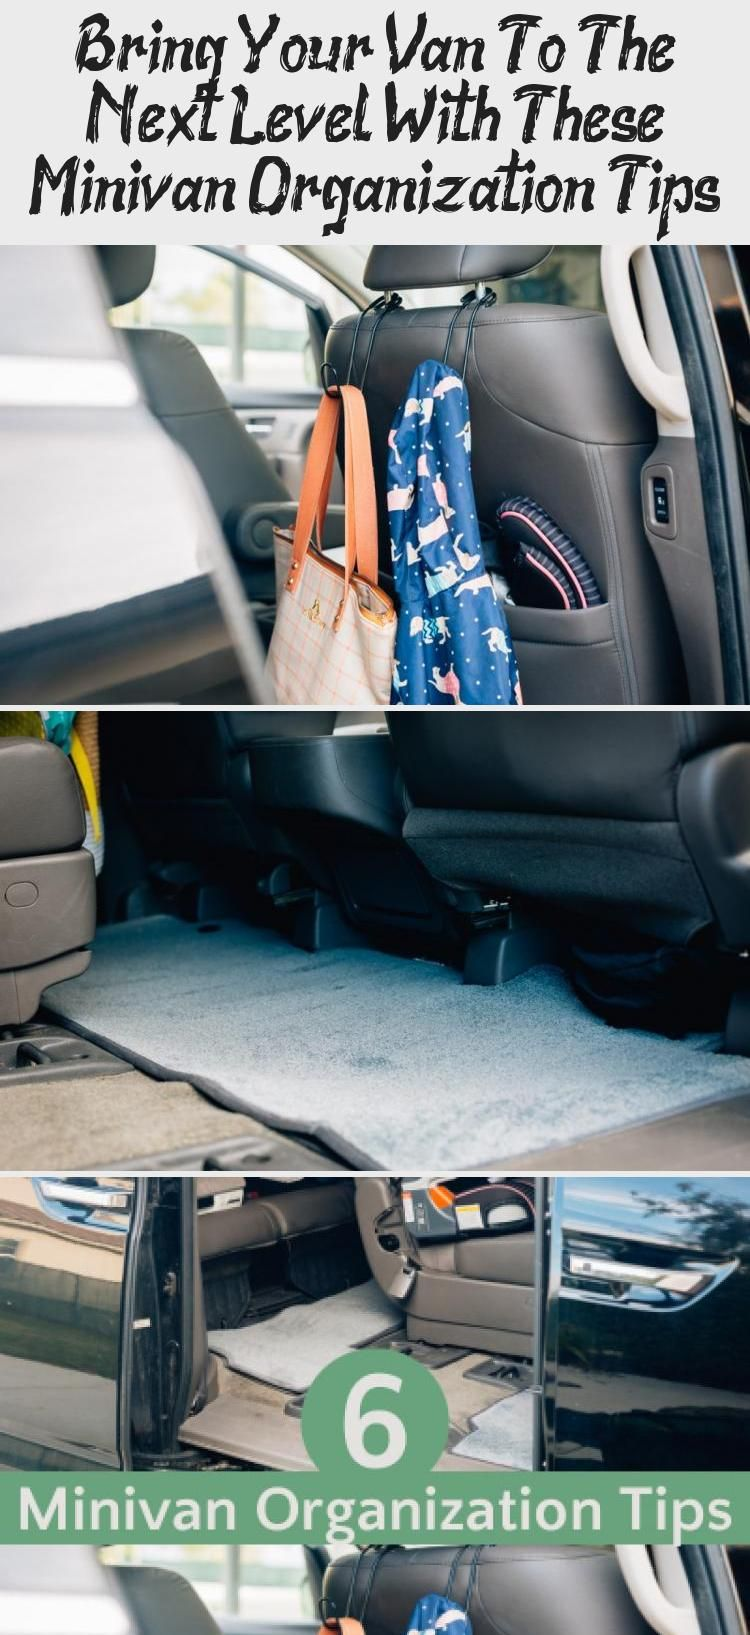 Bring Your Van To The Next Level With These Minivan